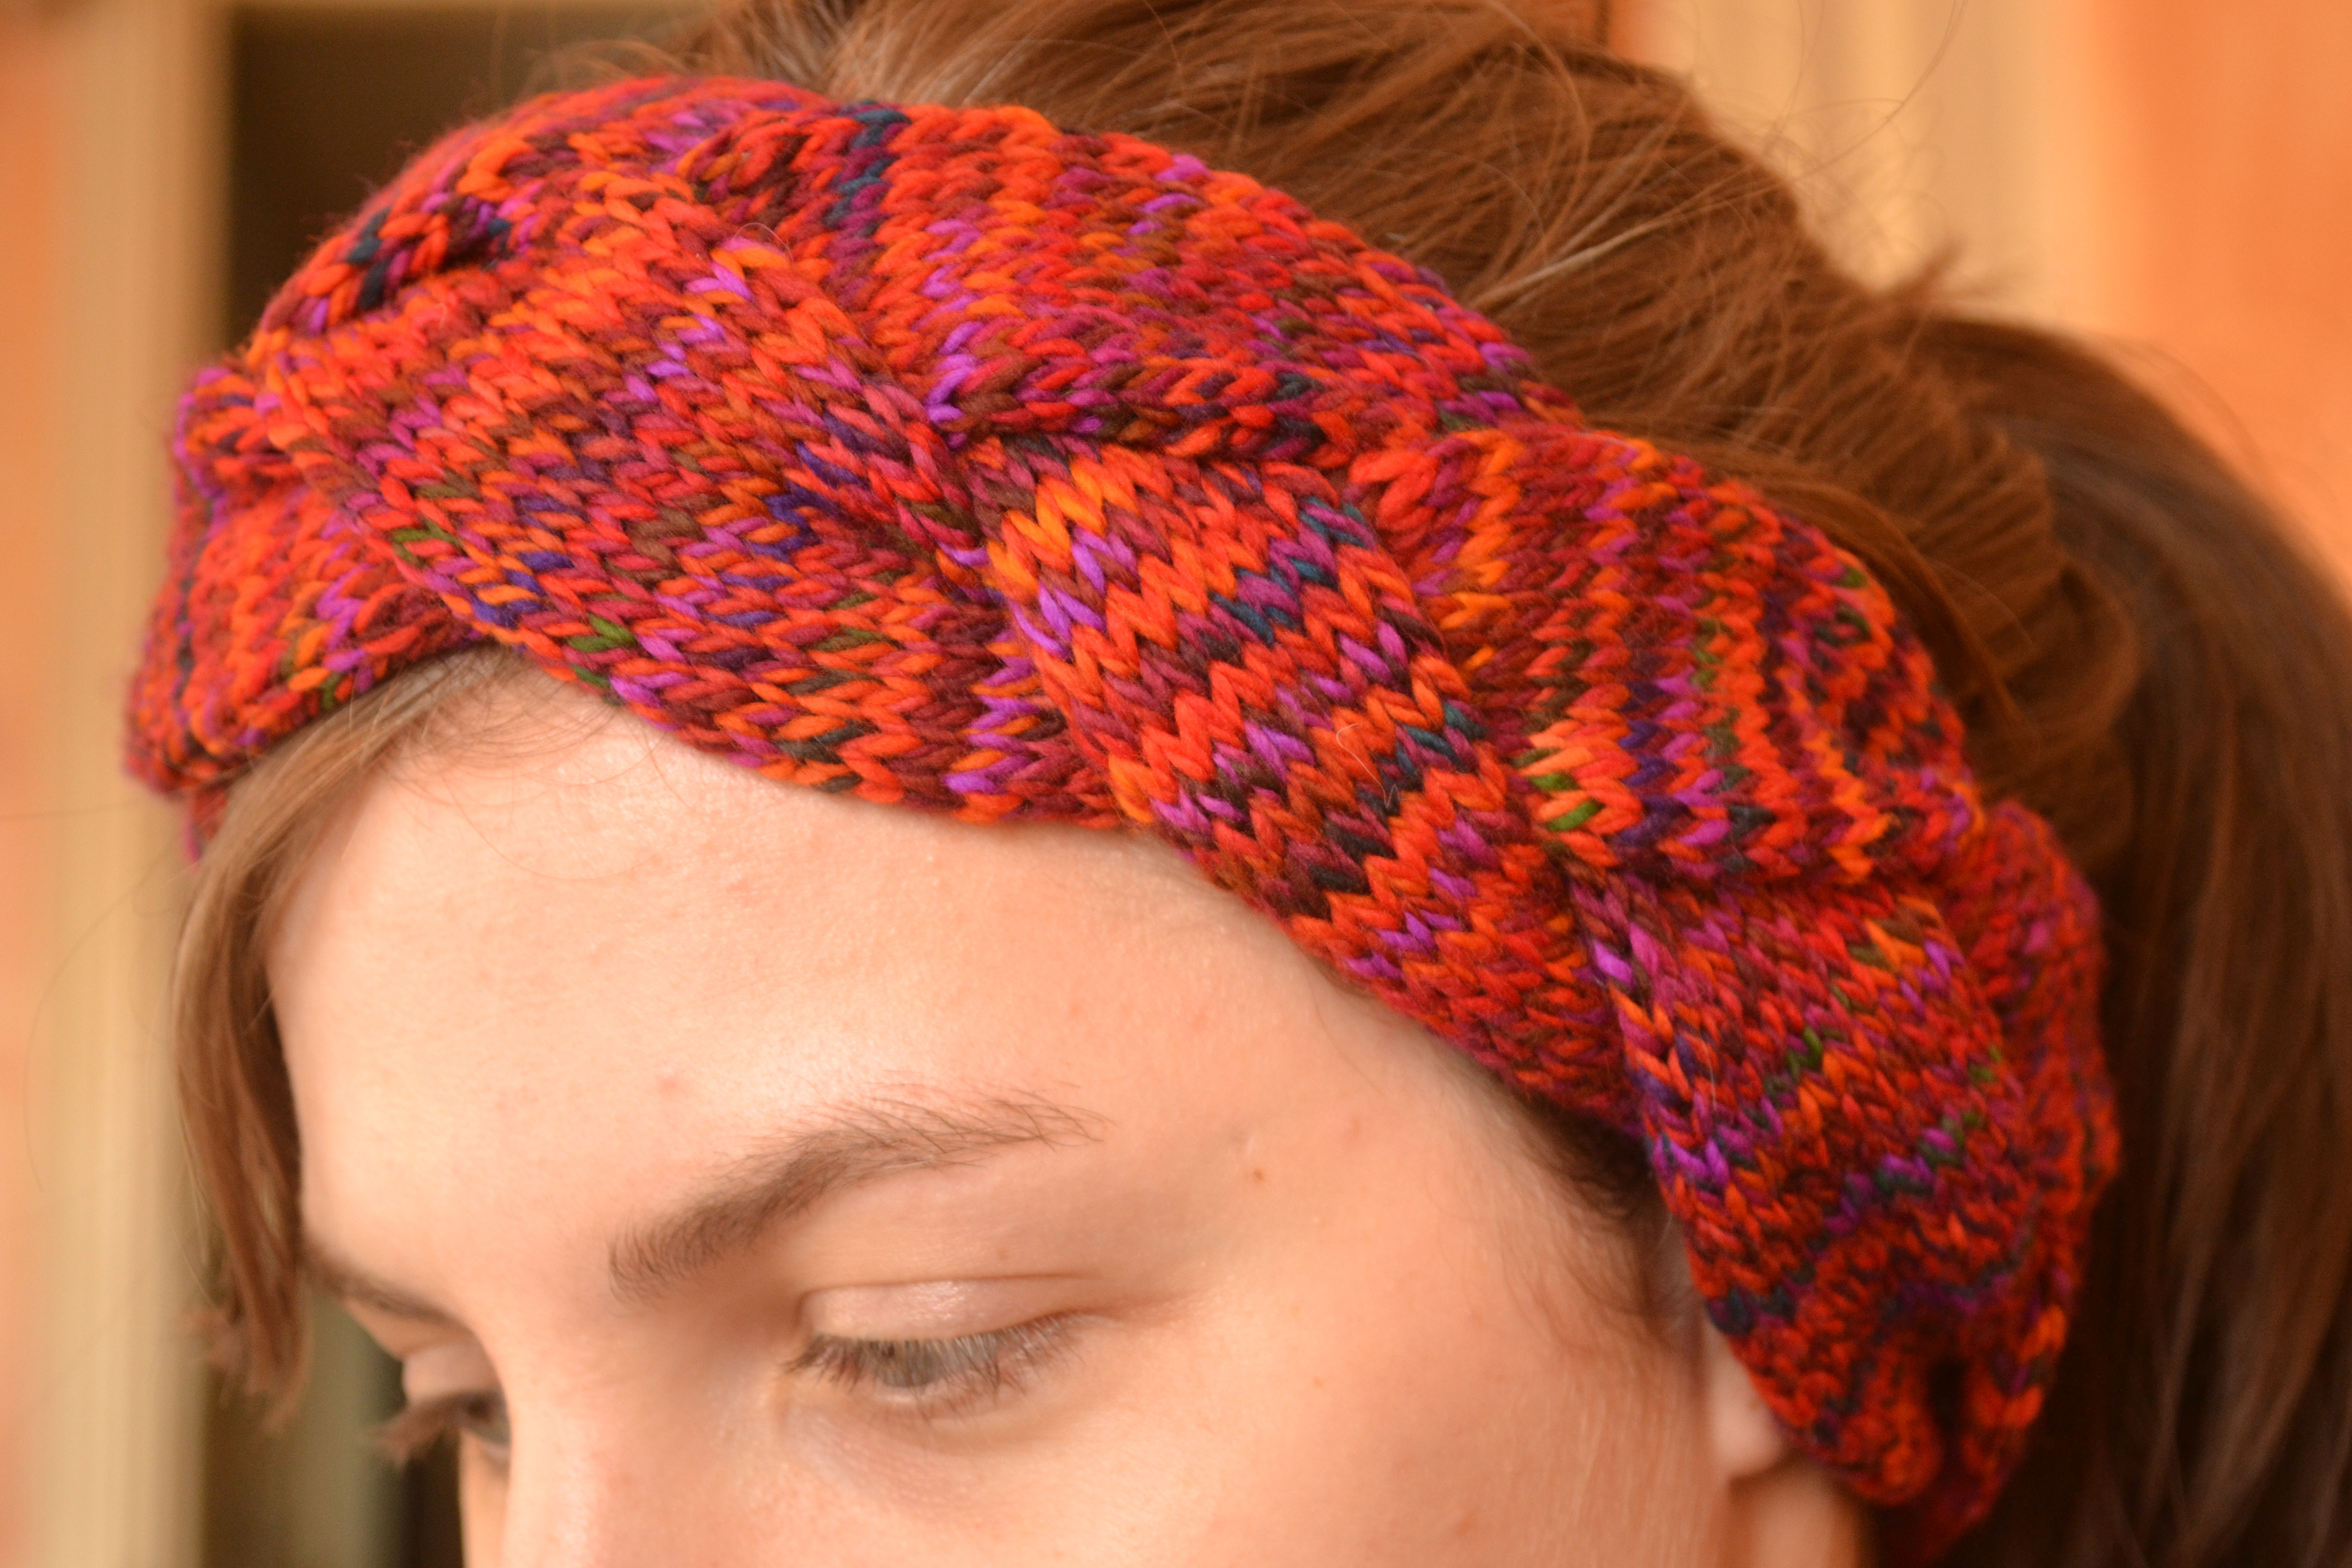 Elegant Braided Knit Headband Patterns Braided Knit Headband Of Amazing 42 Pics Braided Knit Headband